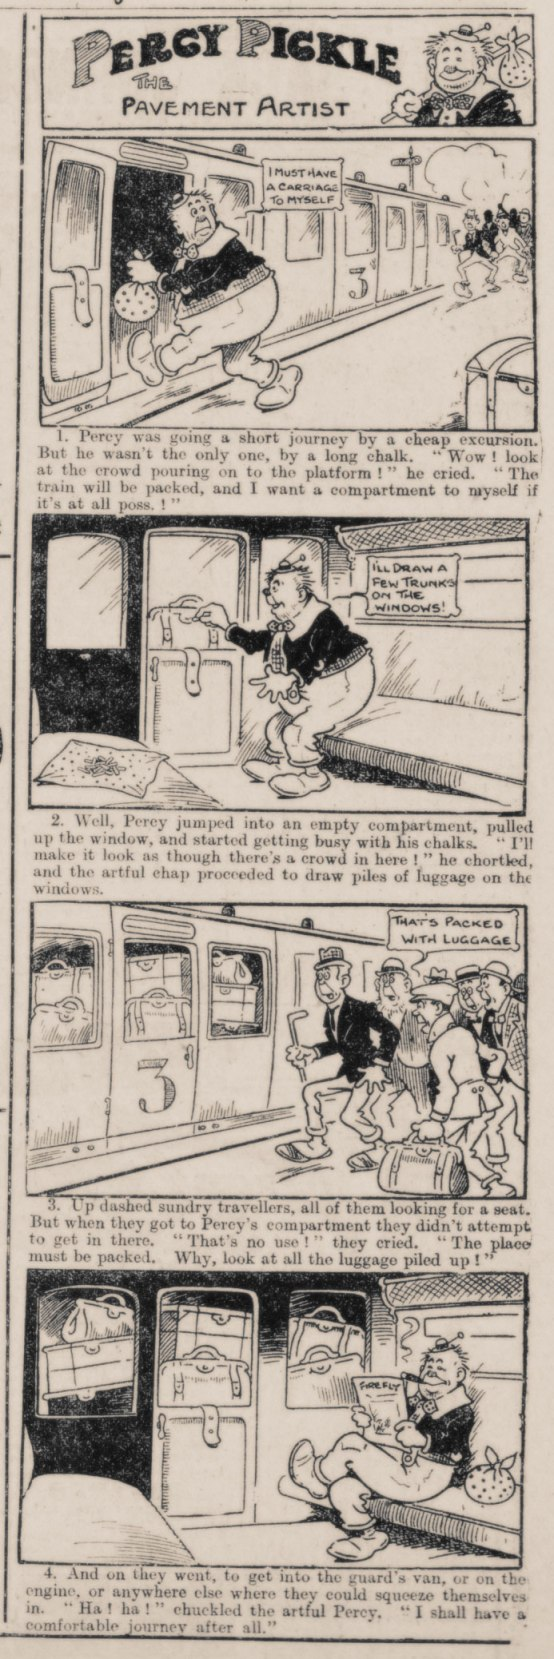 Percy Pickle cartoon strip 1914